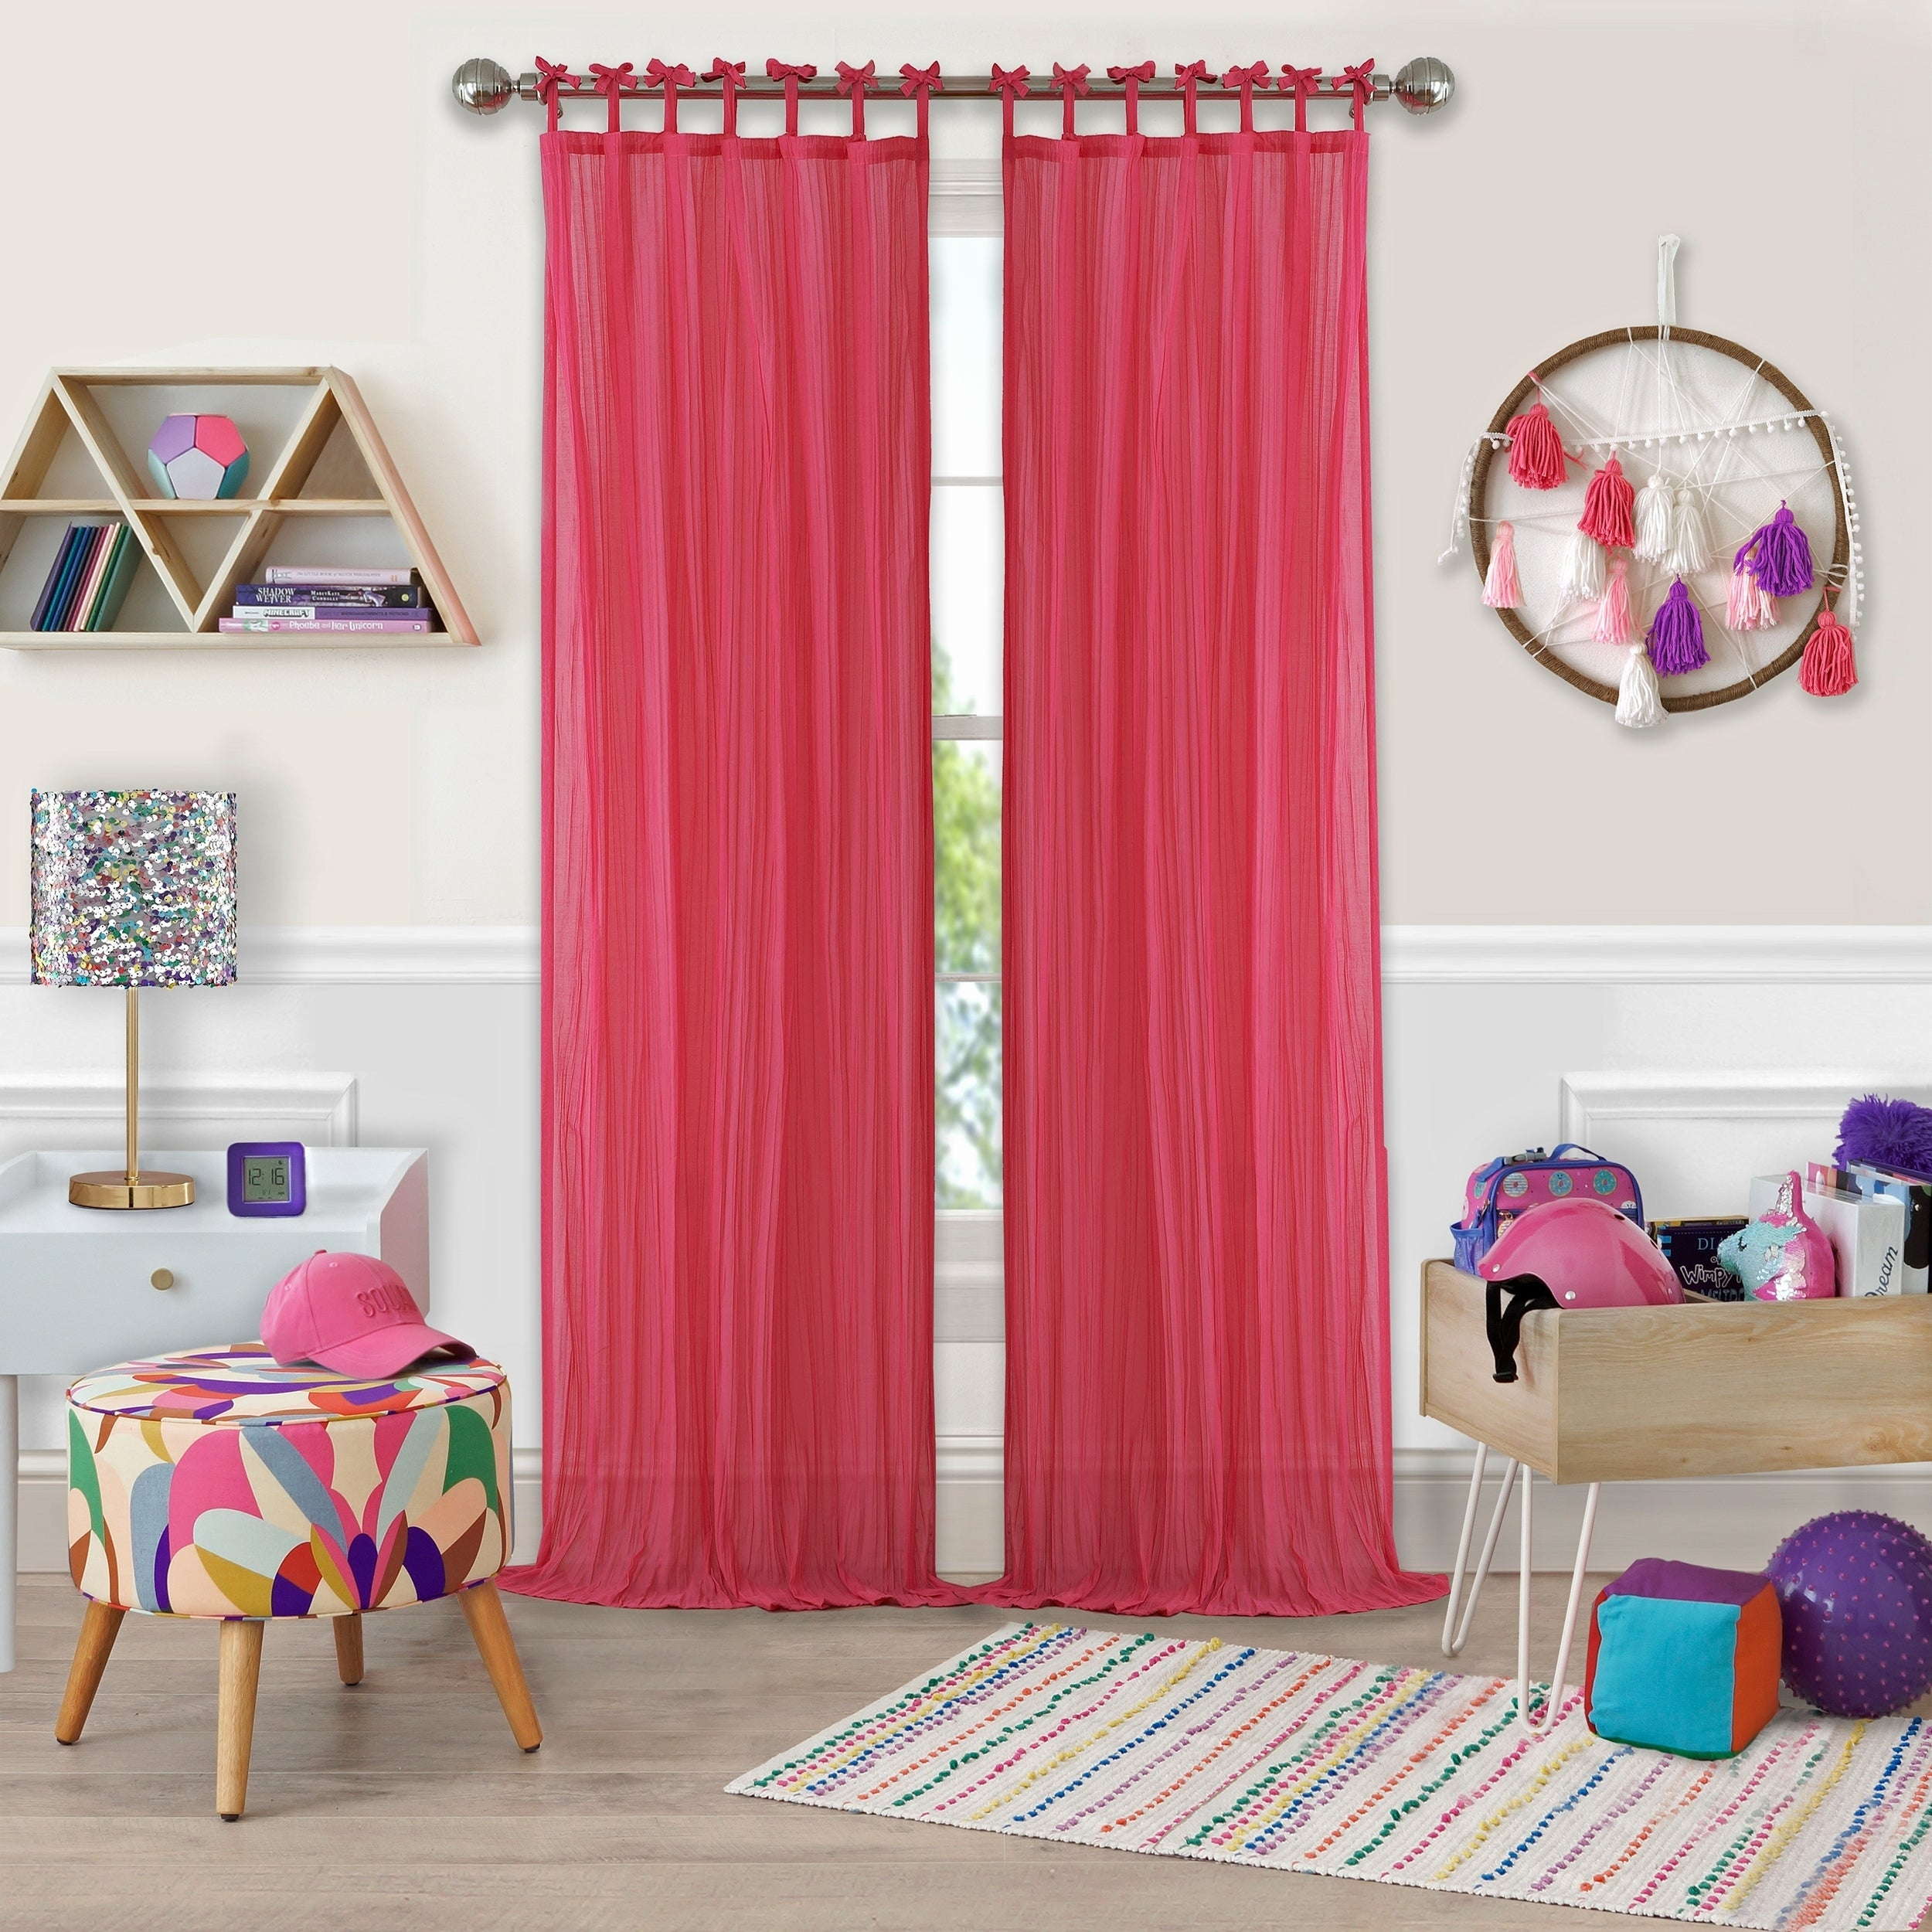 Elrene Greta Kid's Tab Top Sheer Window Curtain Panel Pertaining To Elrene Aurora Kids Room Darkening Layered Sheer Curtains (View 15 of 20)